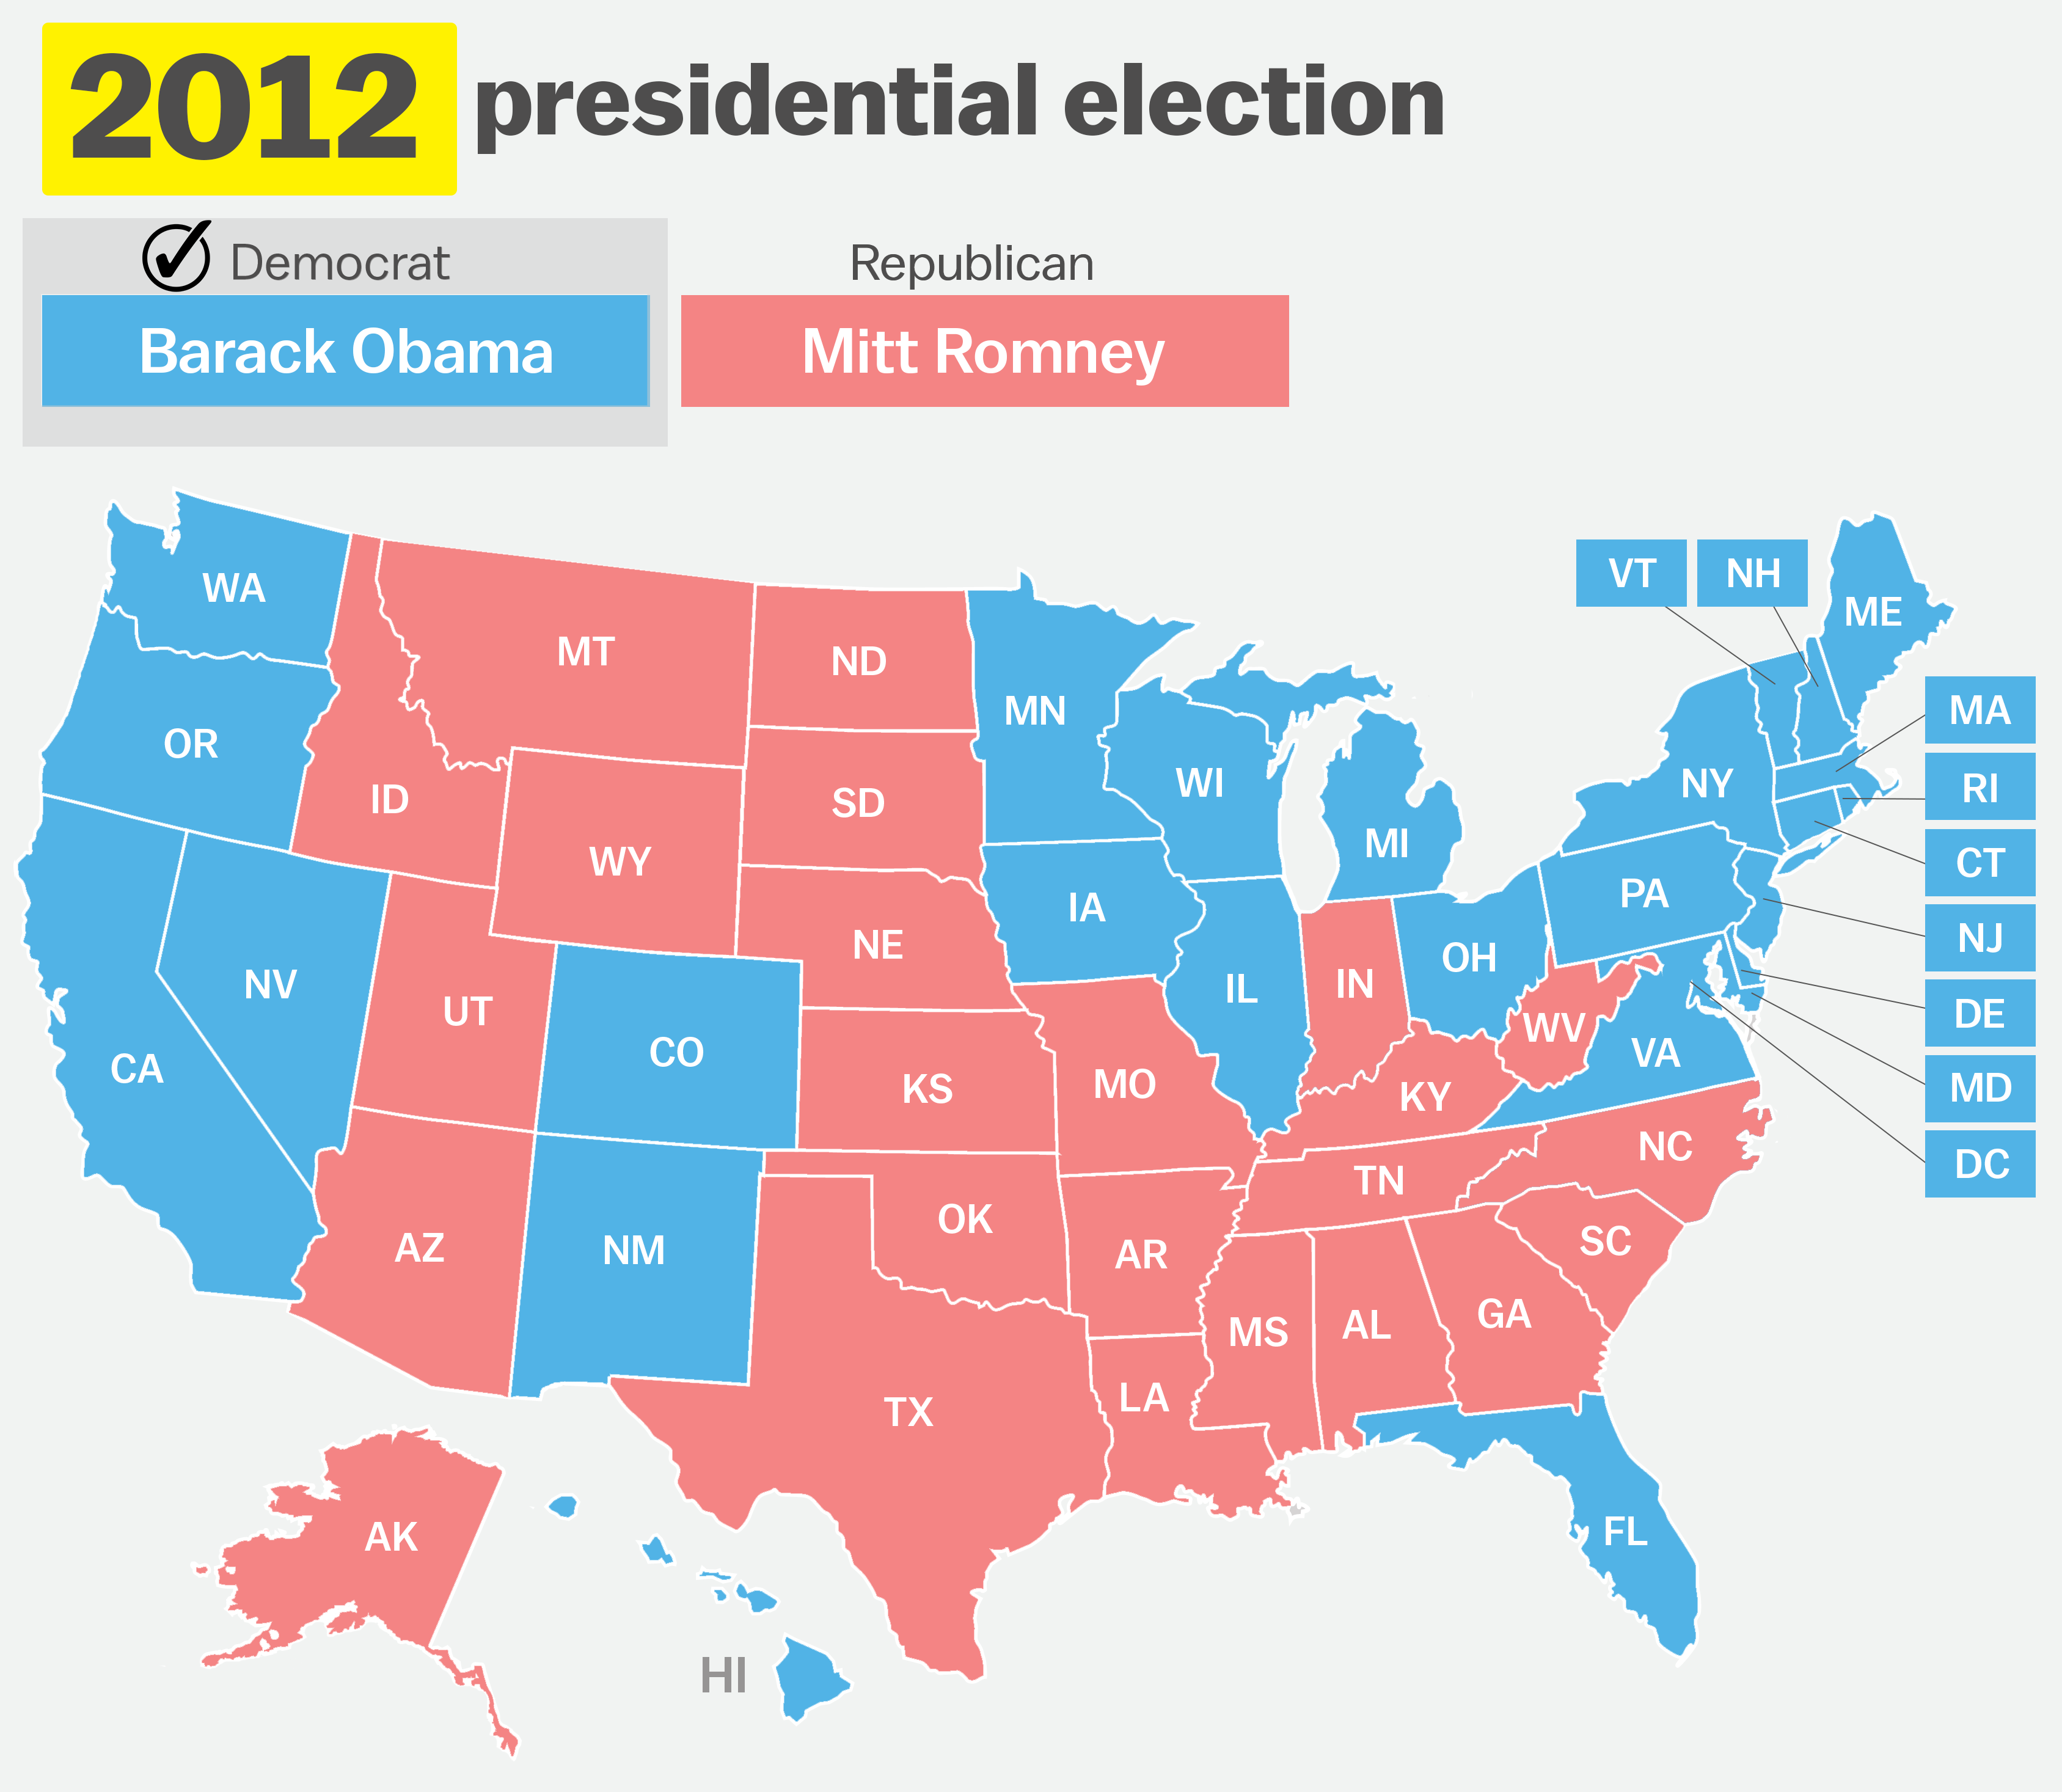 Romney Obama Election Maps Us History The American Electoral Map - Blankpacific us map